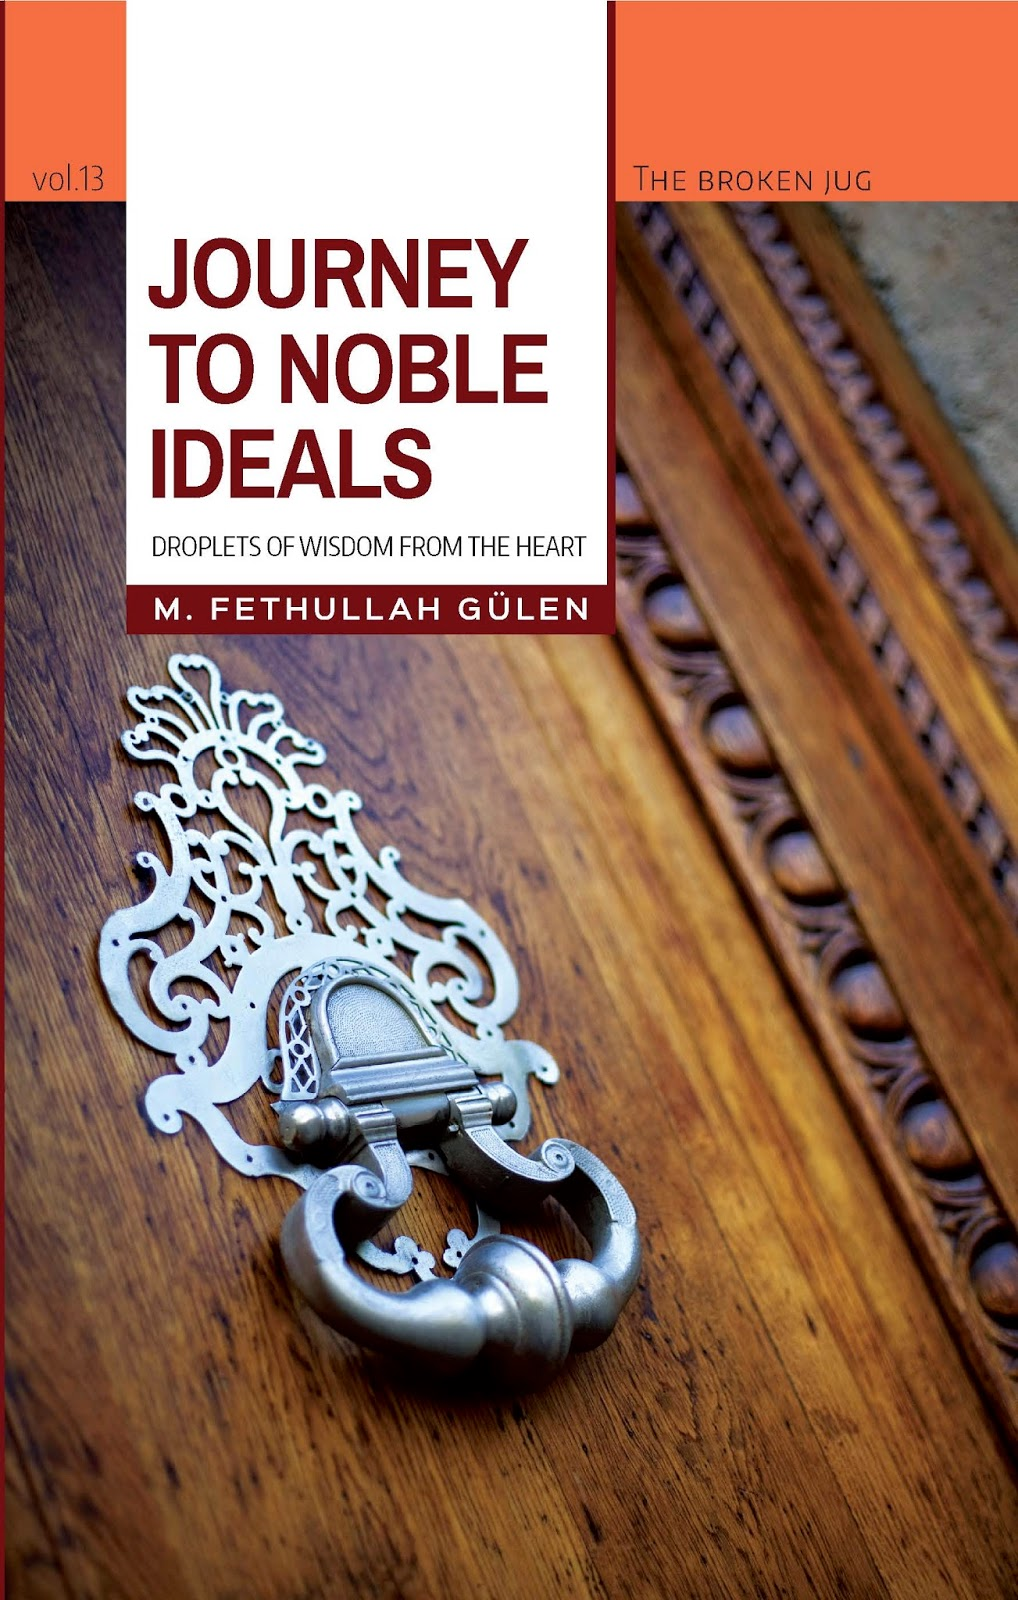 Journey to Noble Ideals by Fethullah Gulen